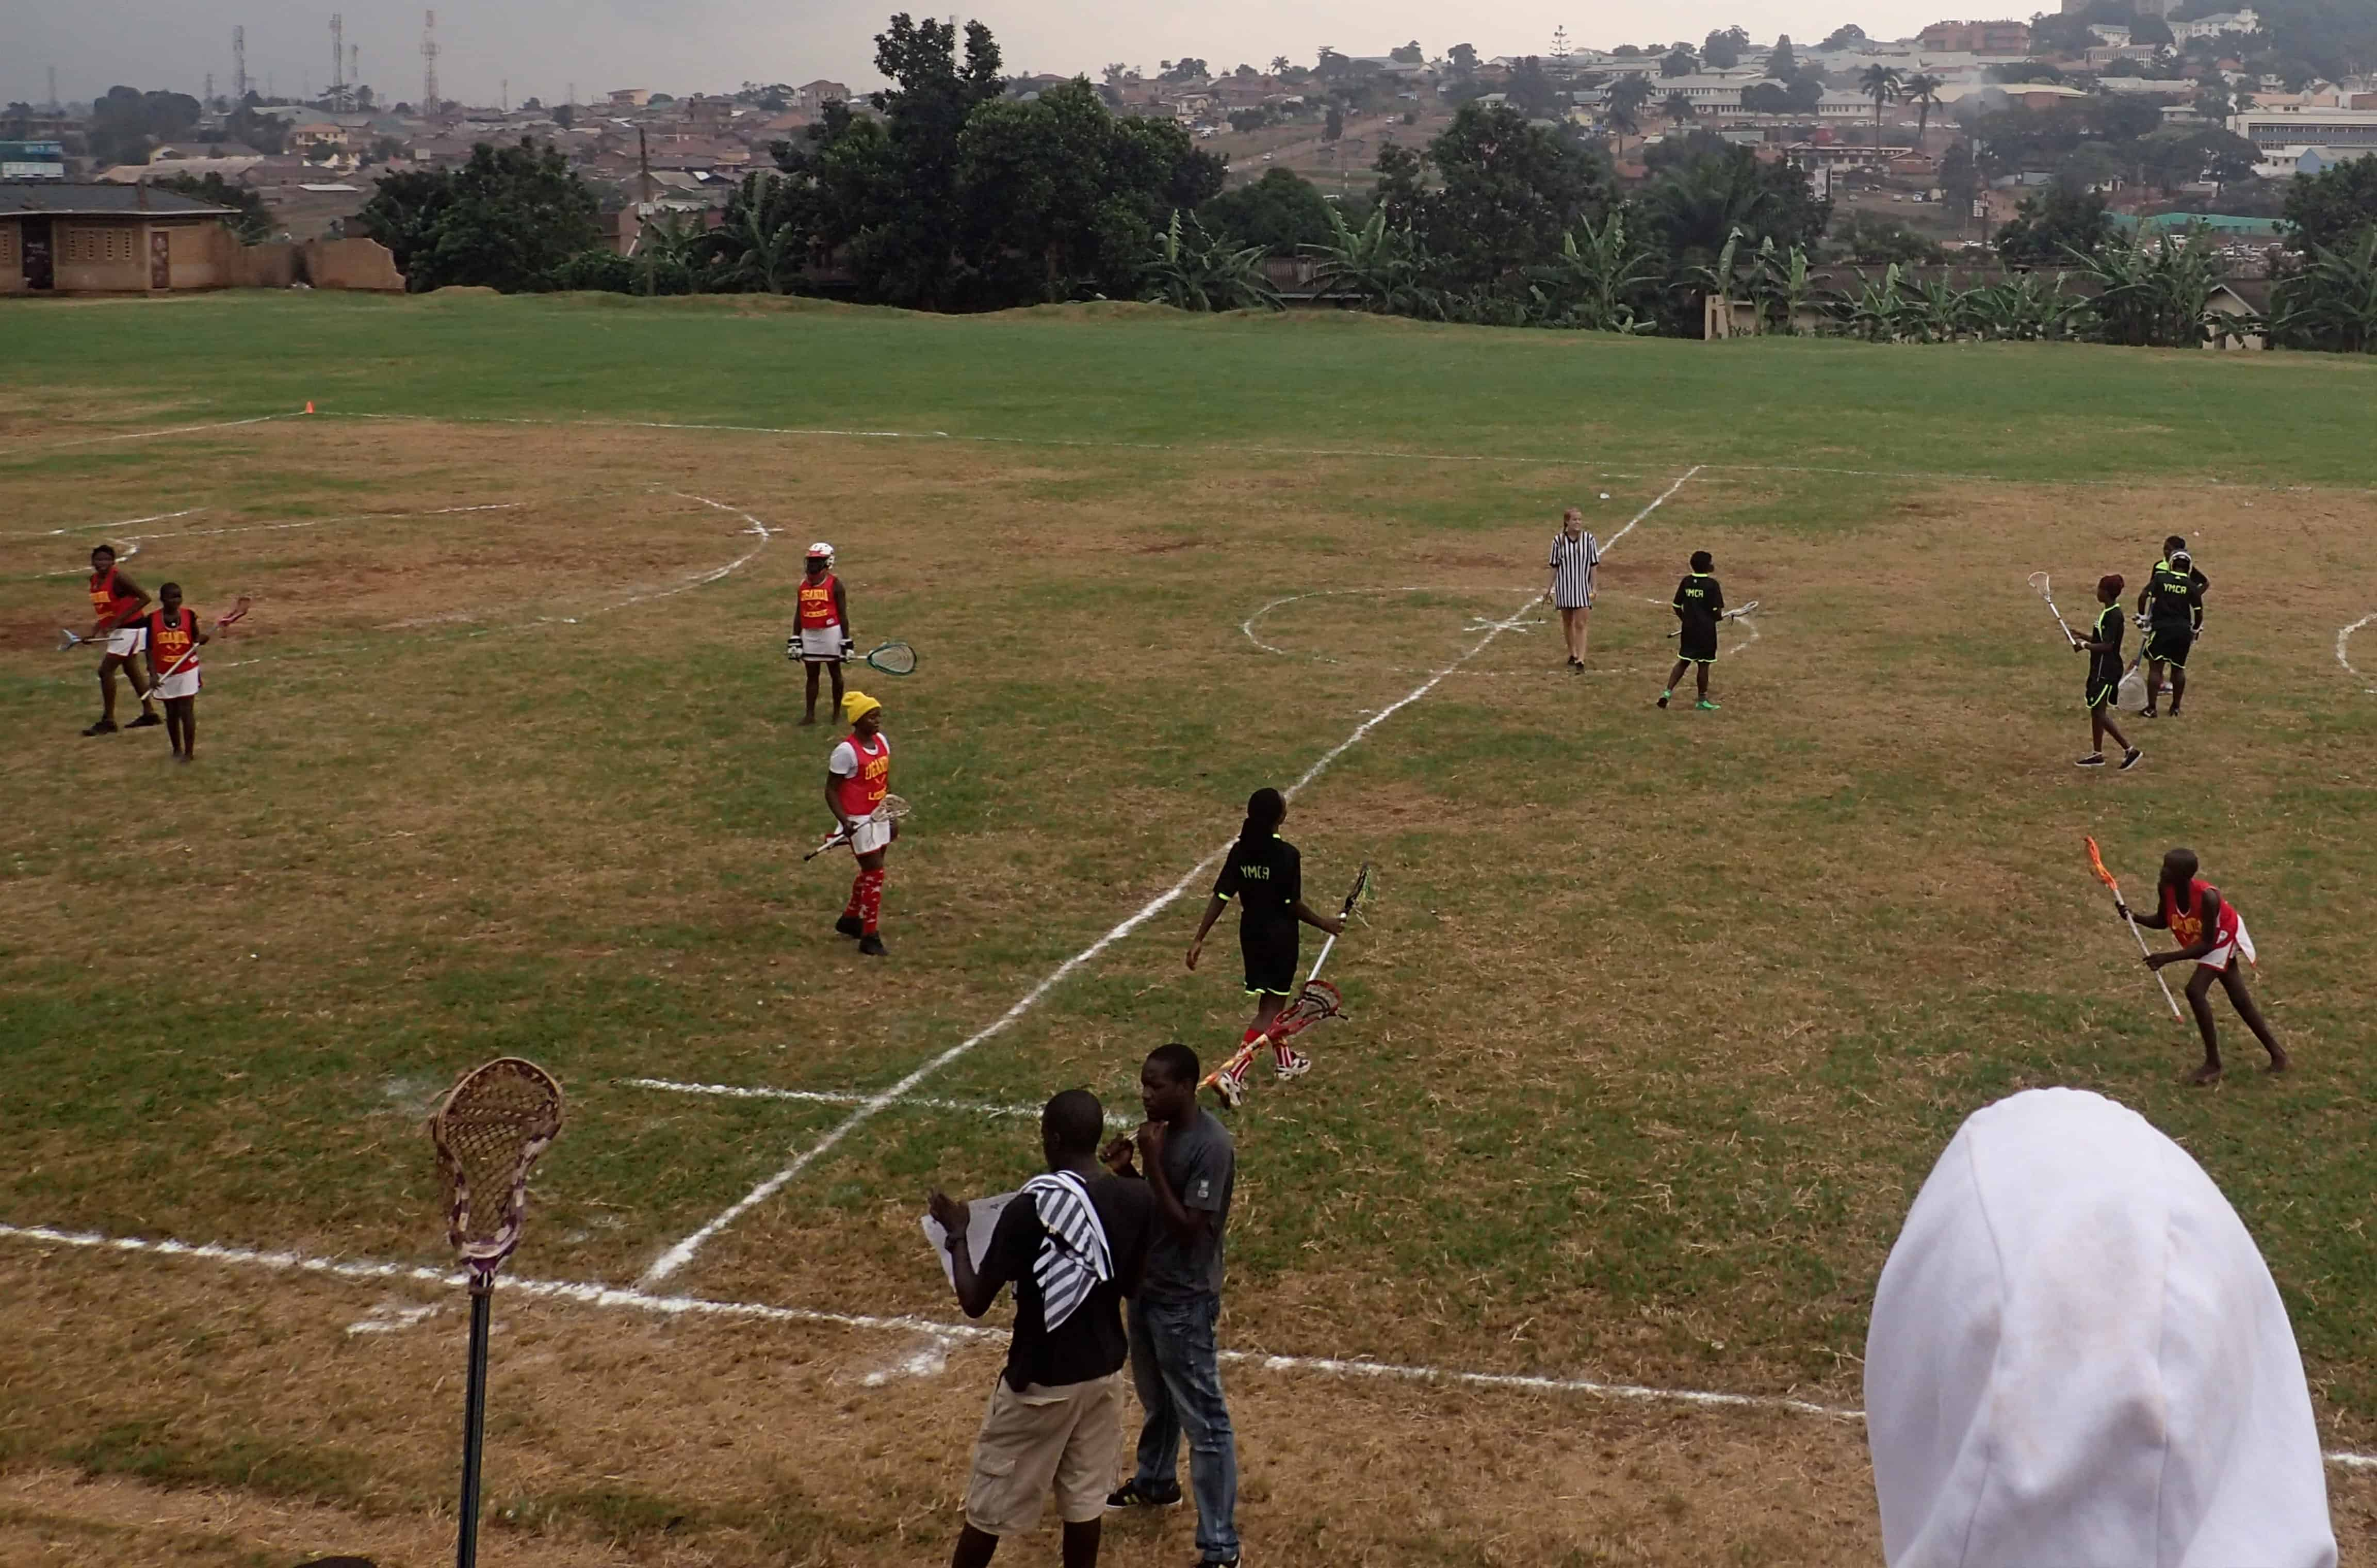 Ugandan women playing lacrosse